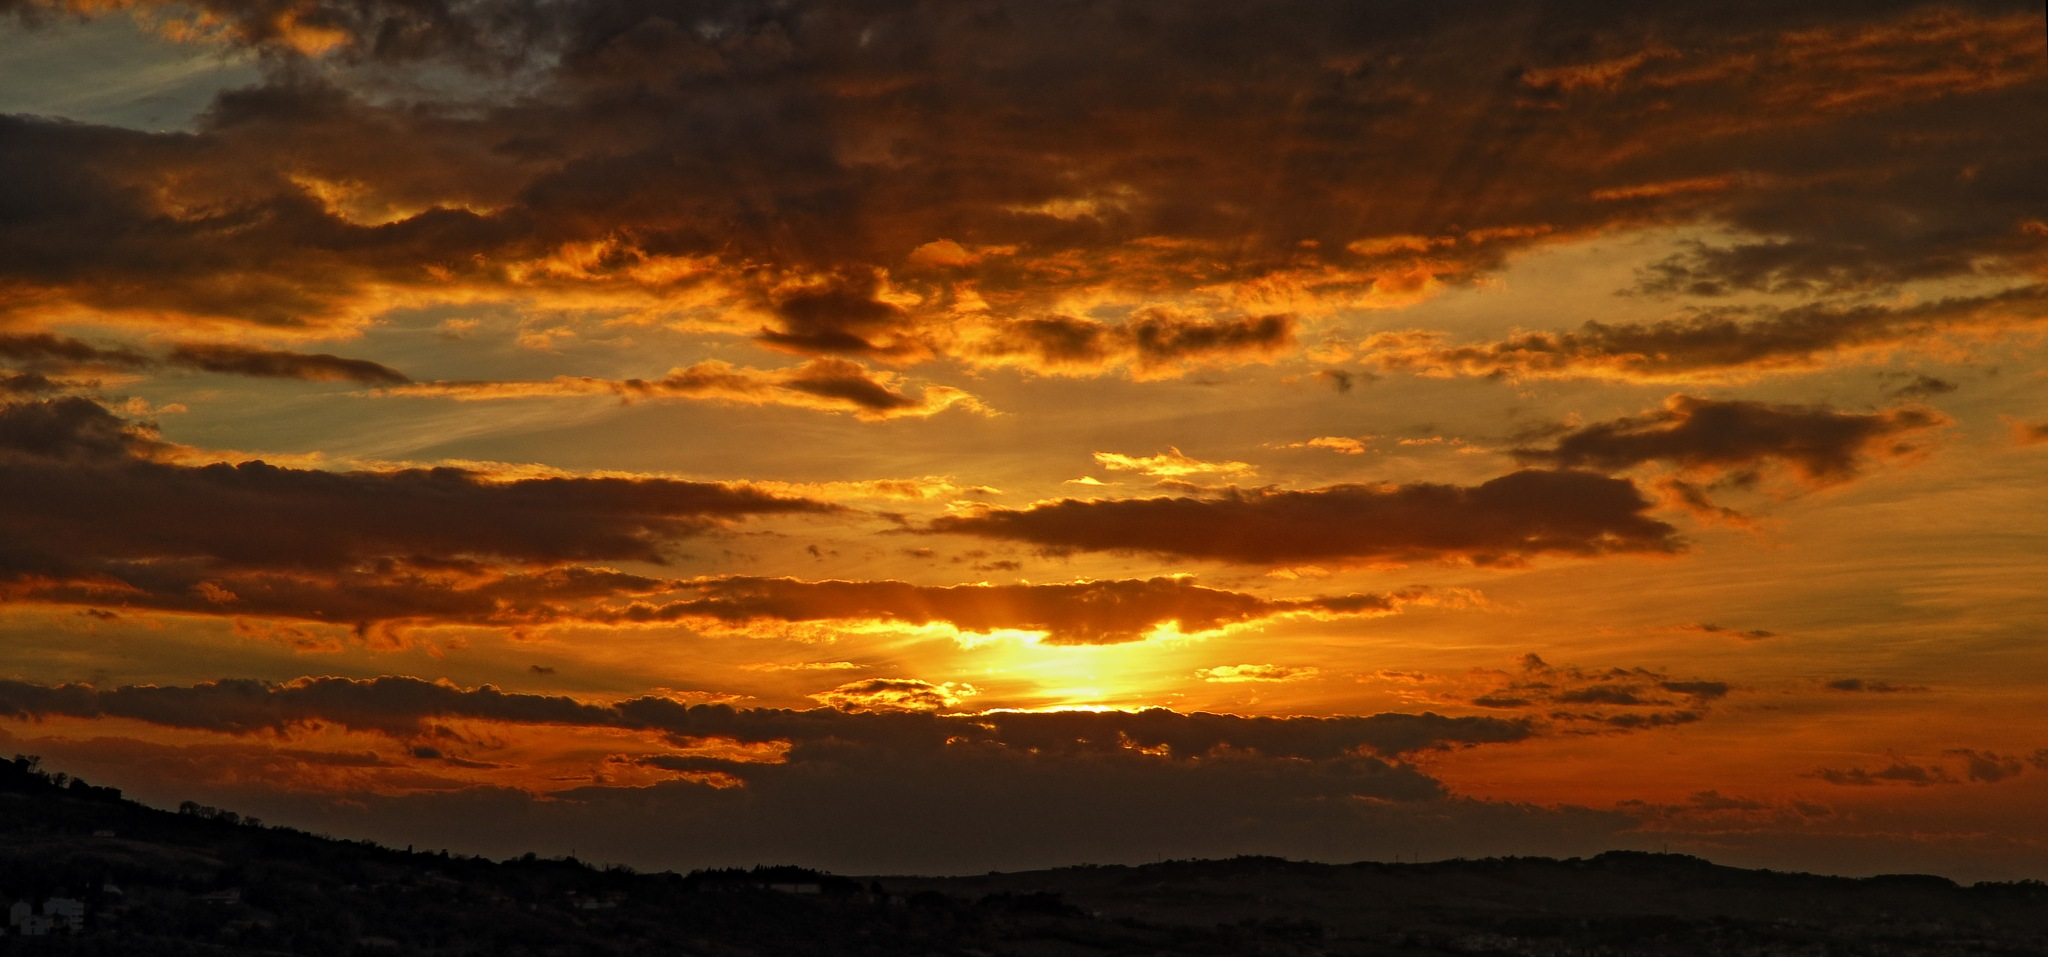 Ancona, Marche, Italy - Sunset in the clouds by Gianni Del Bufalo CC BY-NC-SA by gianni del bufalo